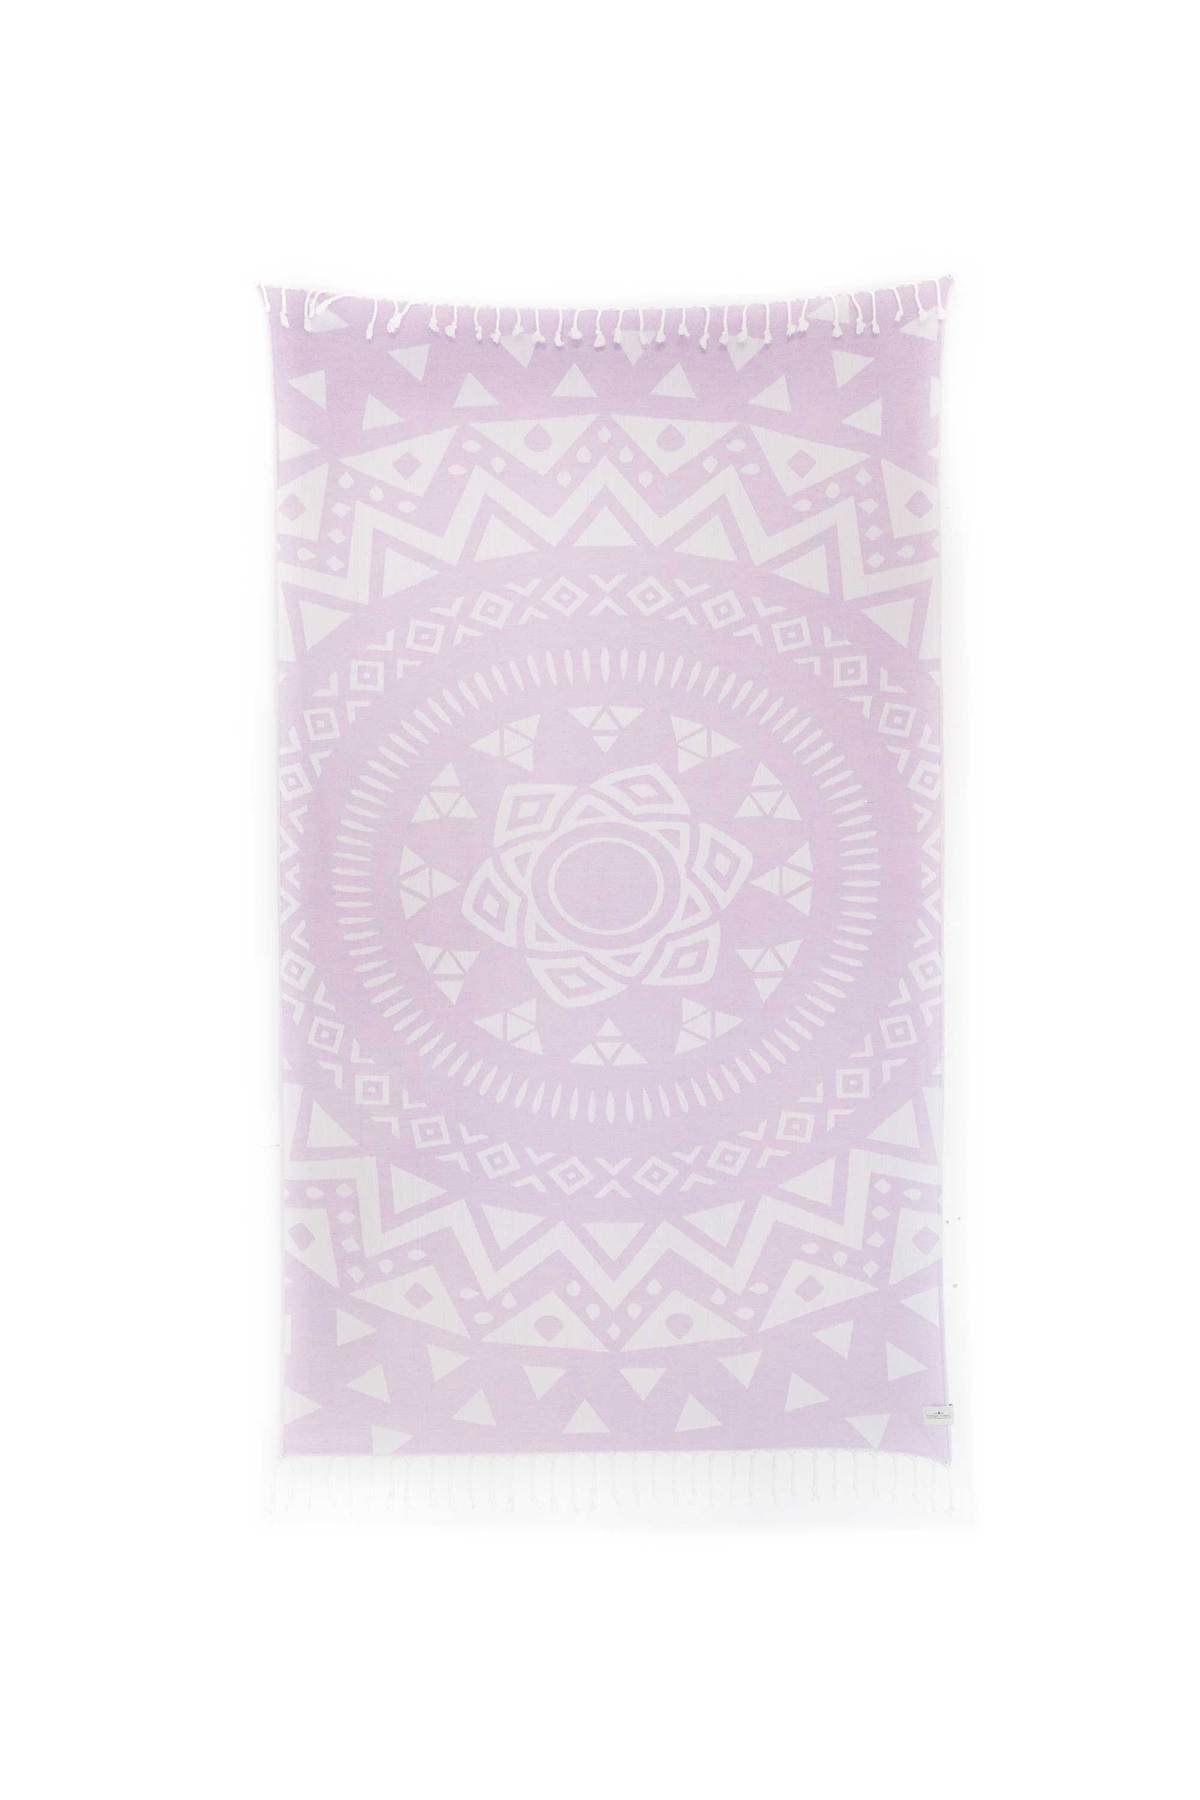 Tofino Towel - The Radar Lilac